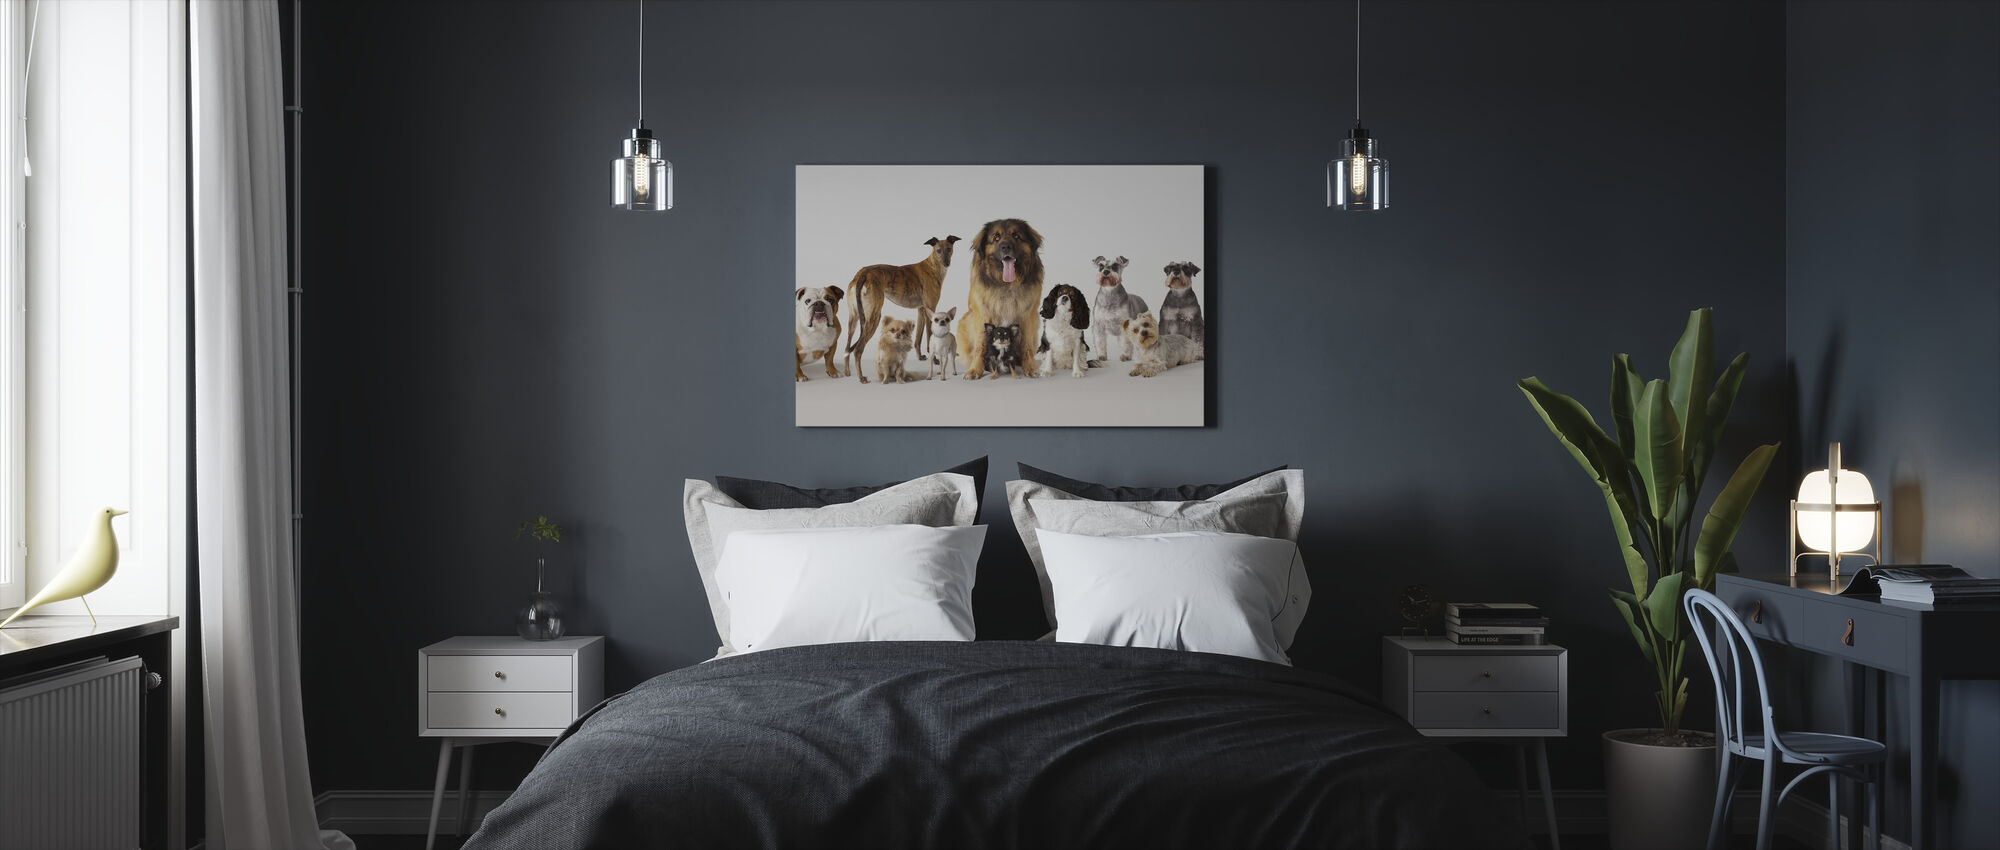 Group Portrait of Dogs - Canvas print - Bedroom